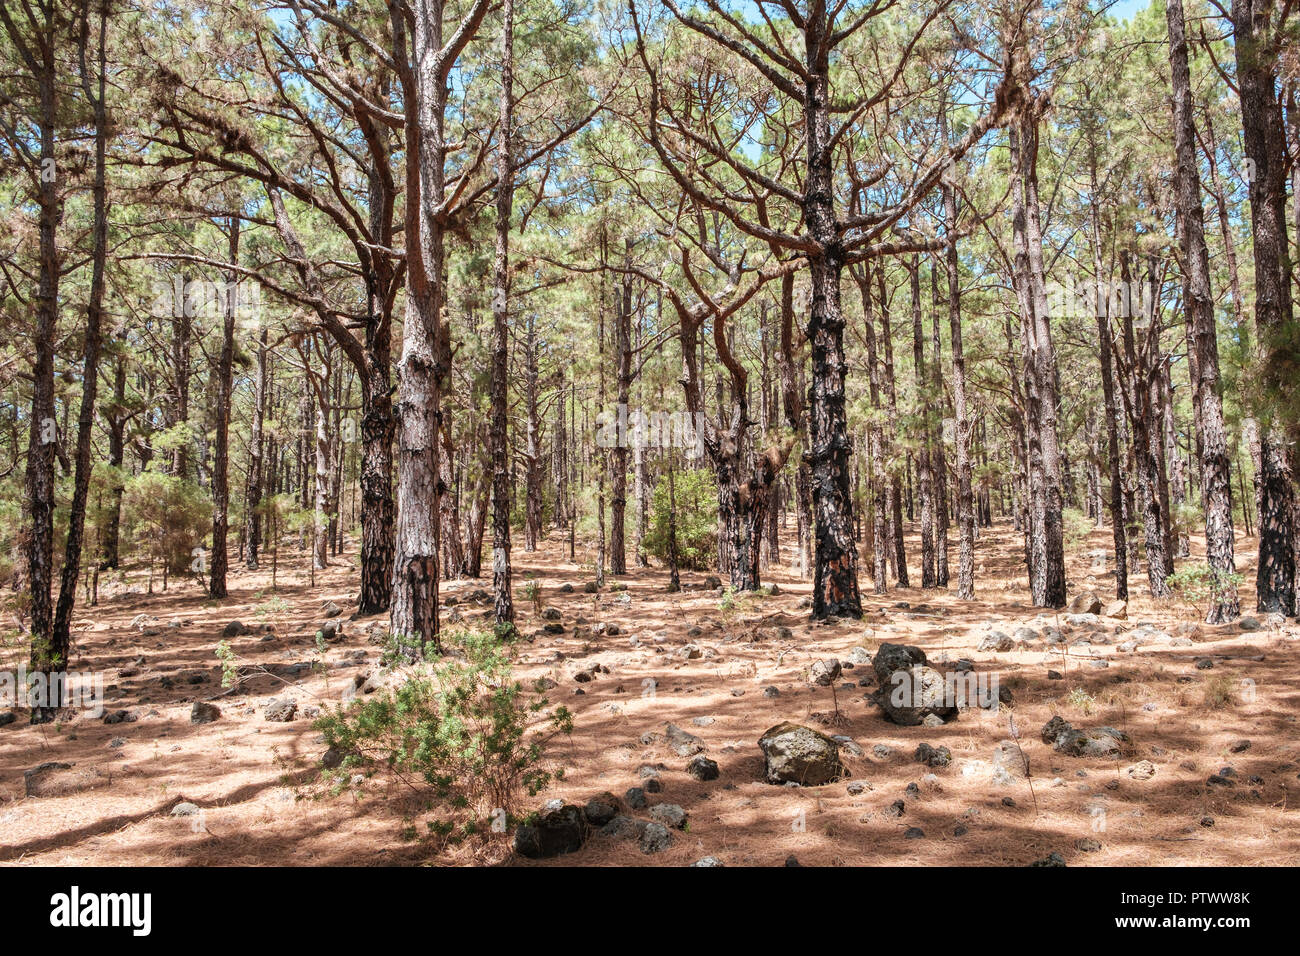 inside conifer forest, pine trees in forest landscape, Esperanza - Stock Image